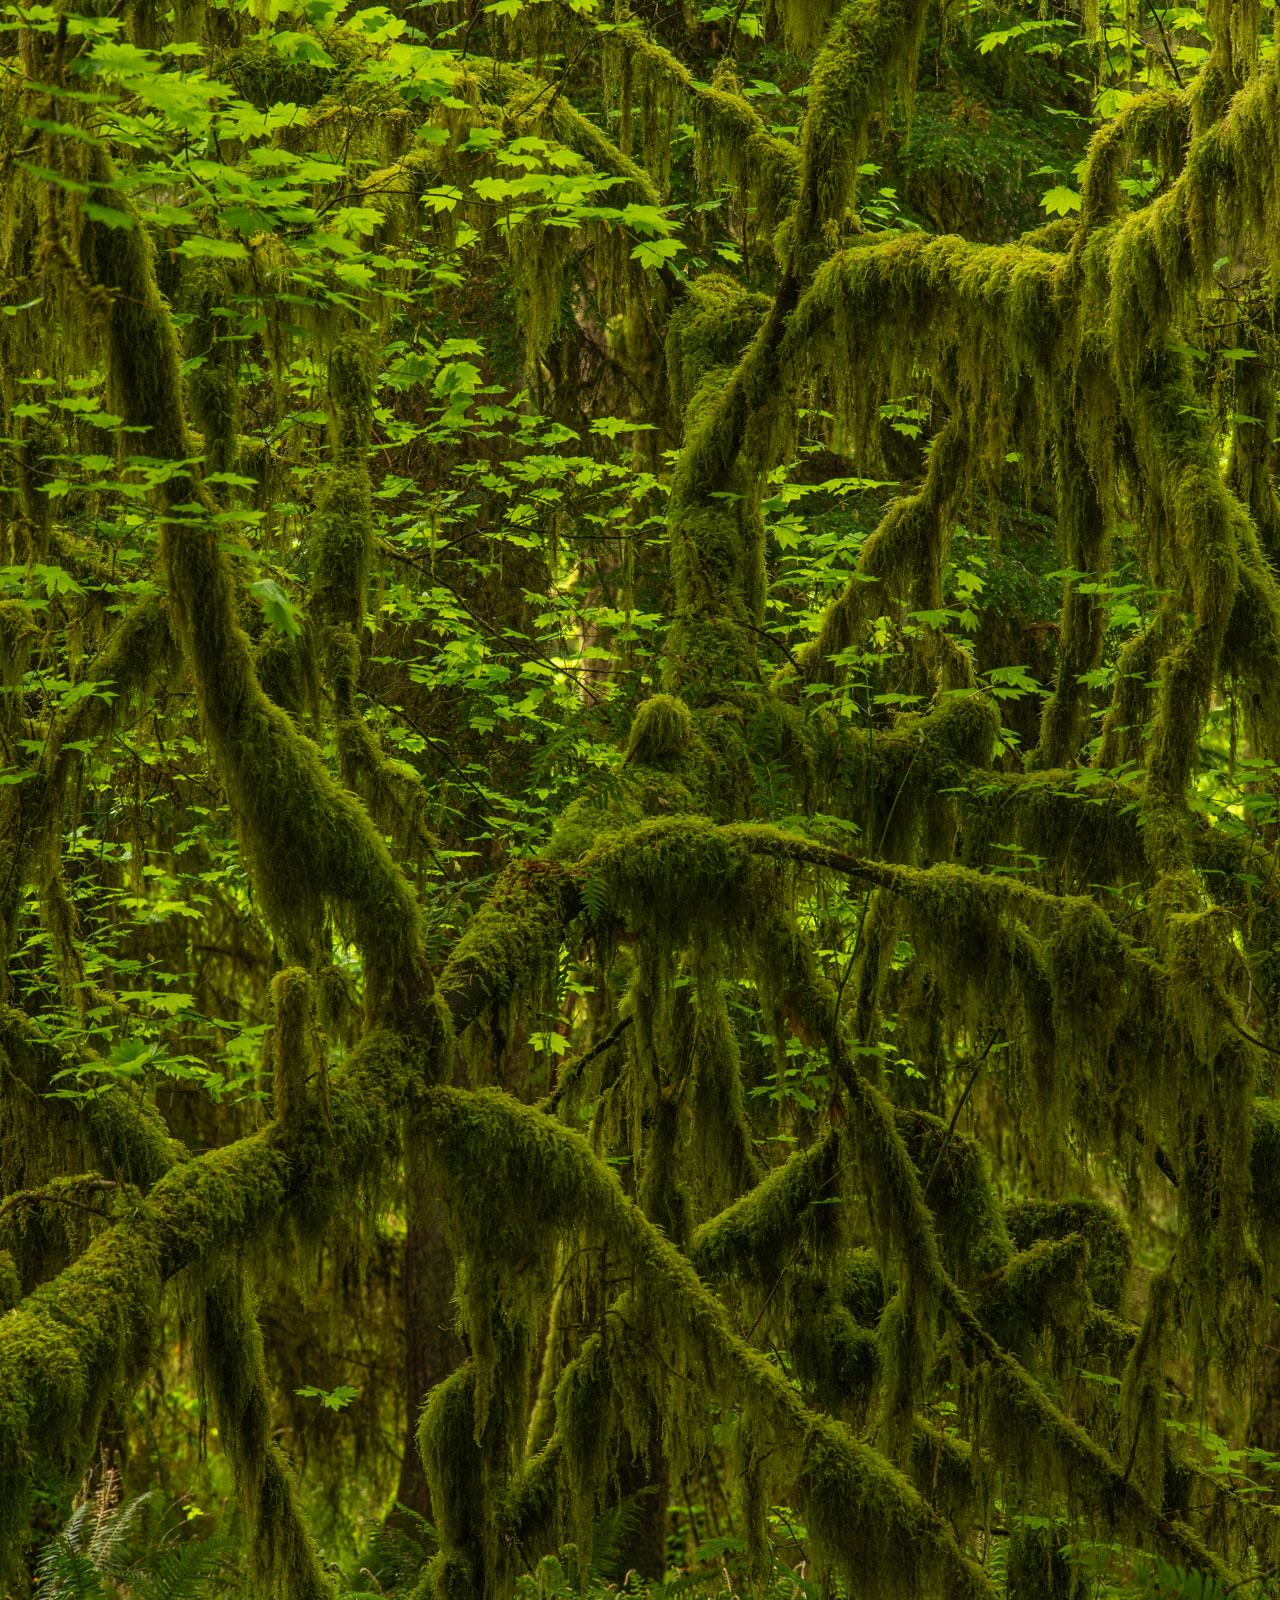 Moss covered Vine Maple in the Hoh Rainforest.